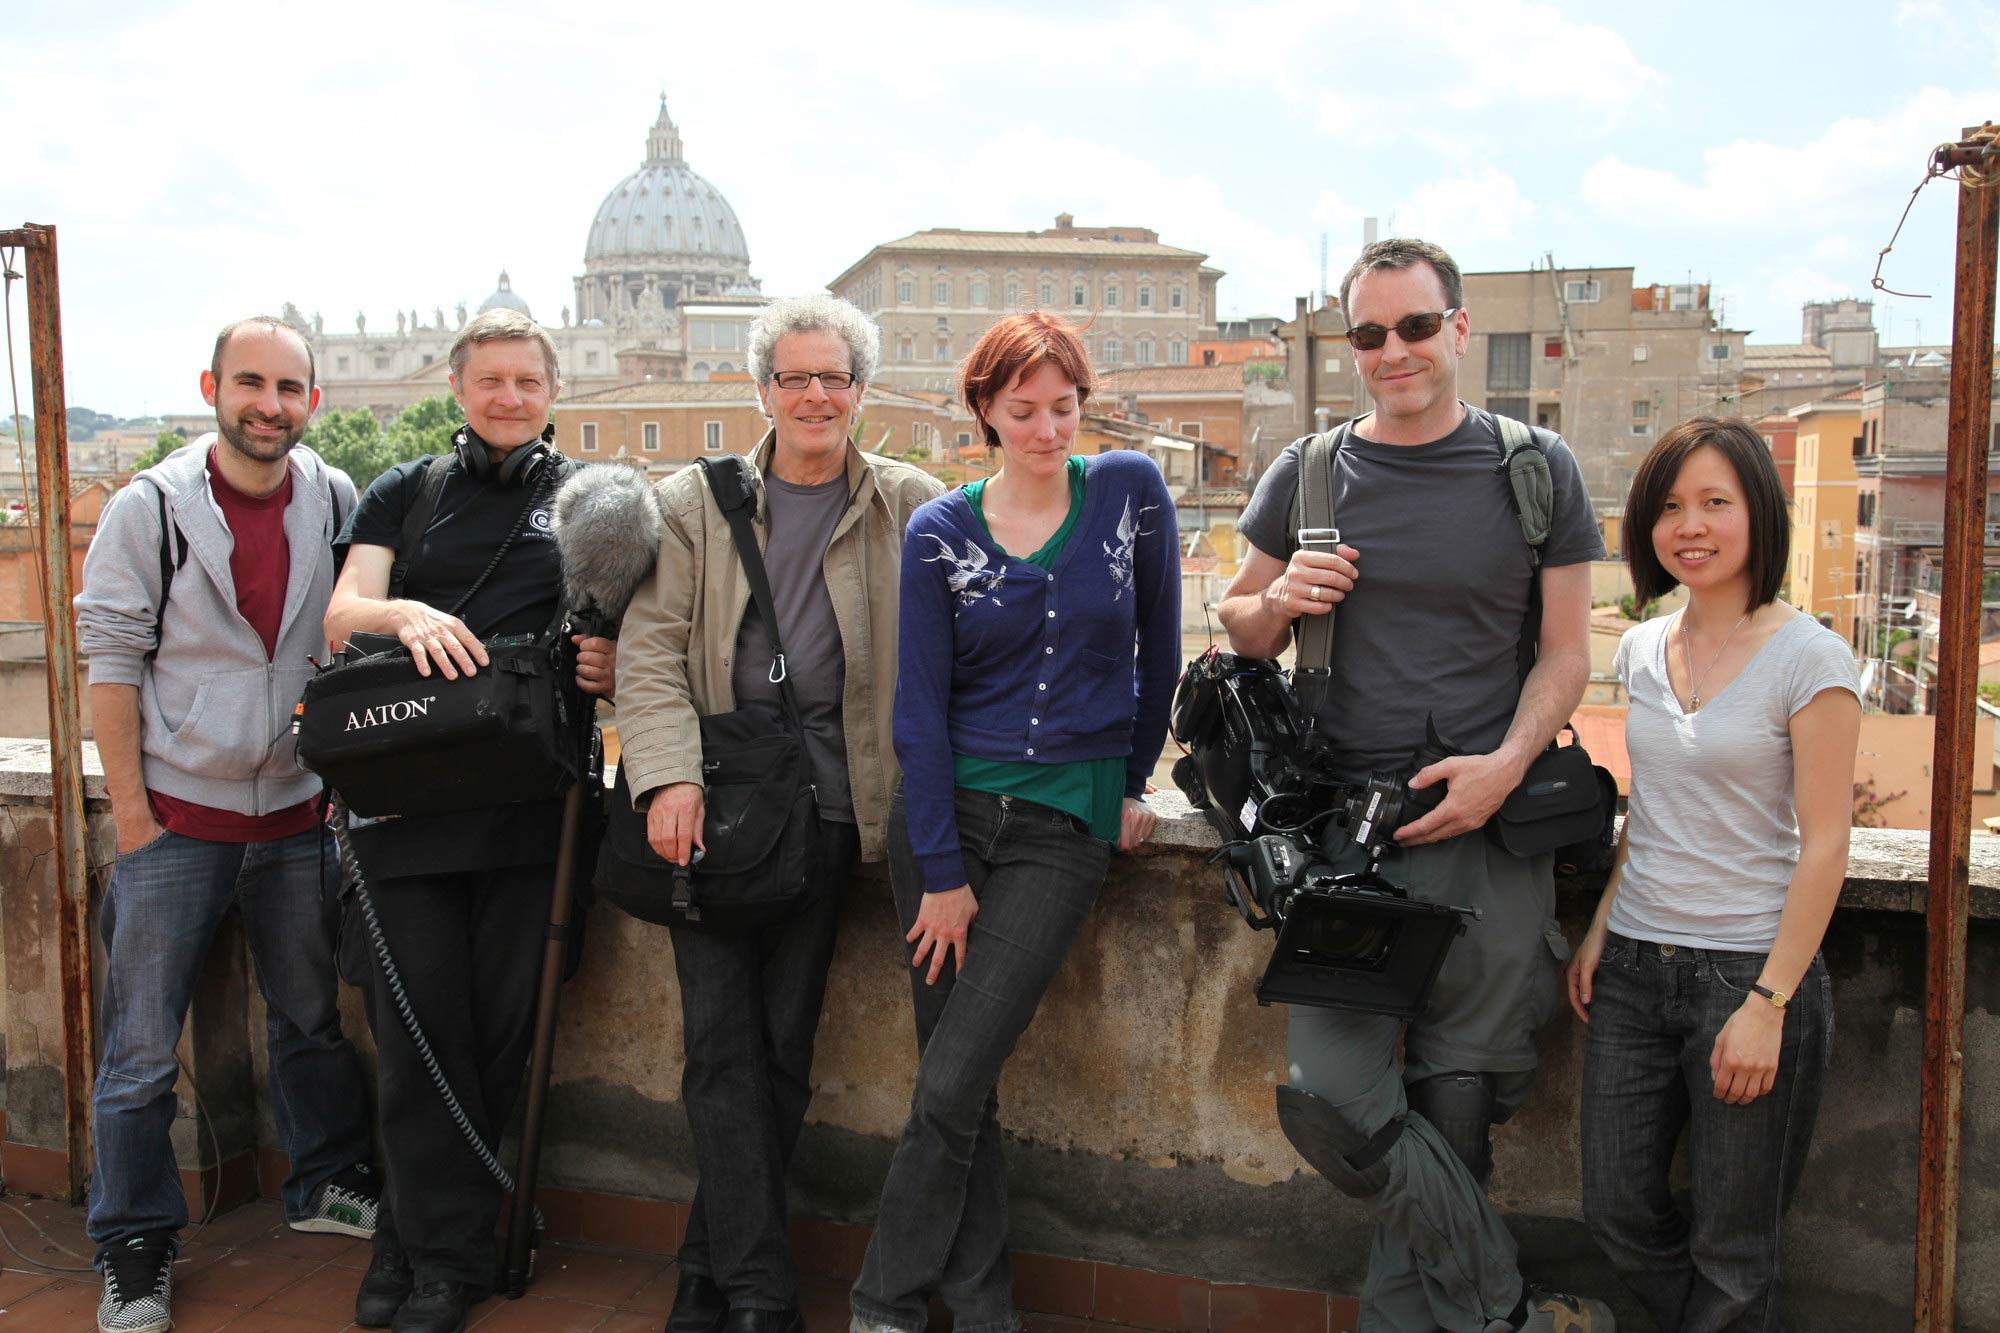 Museum Secrets Crew in Rome for Kensington Communications